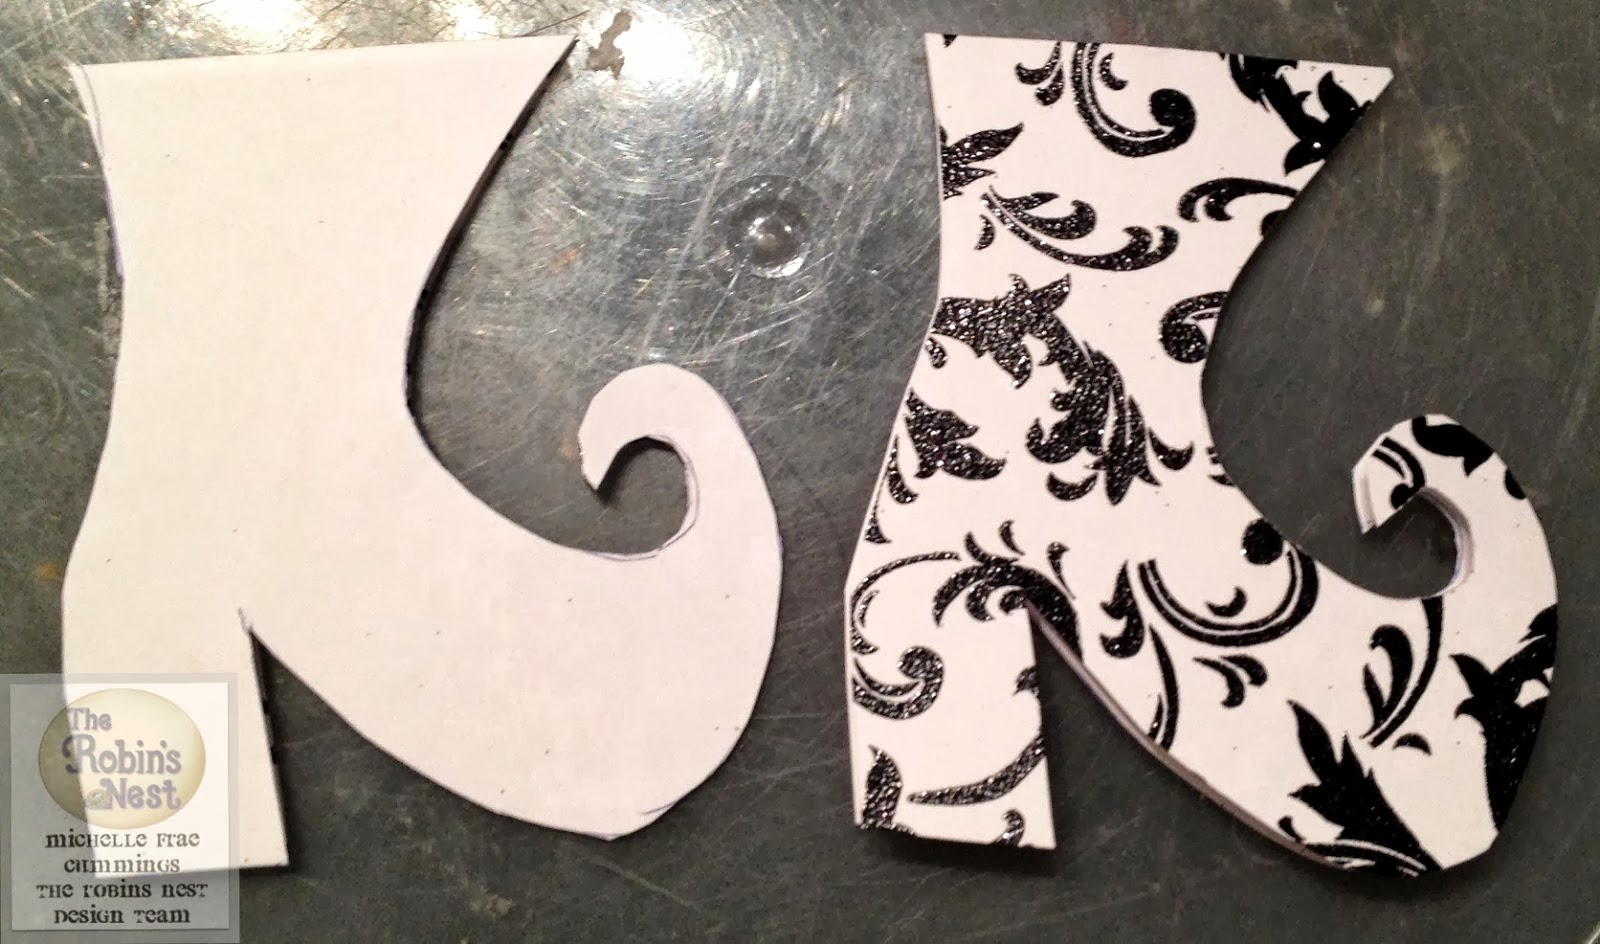 Chattering robins wicked witch shoe cards cut shoes out carefully fold over to show paper pattern maxwellsz